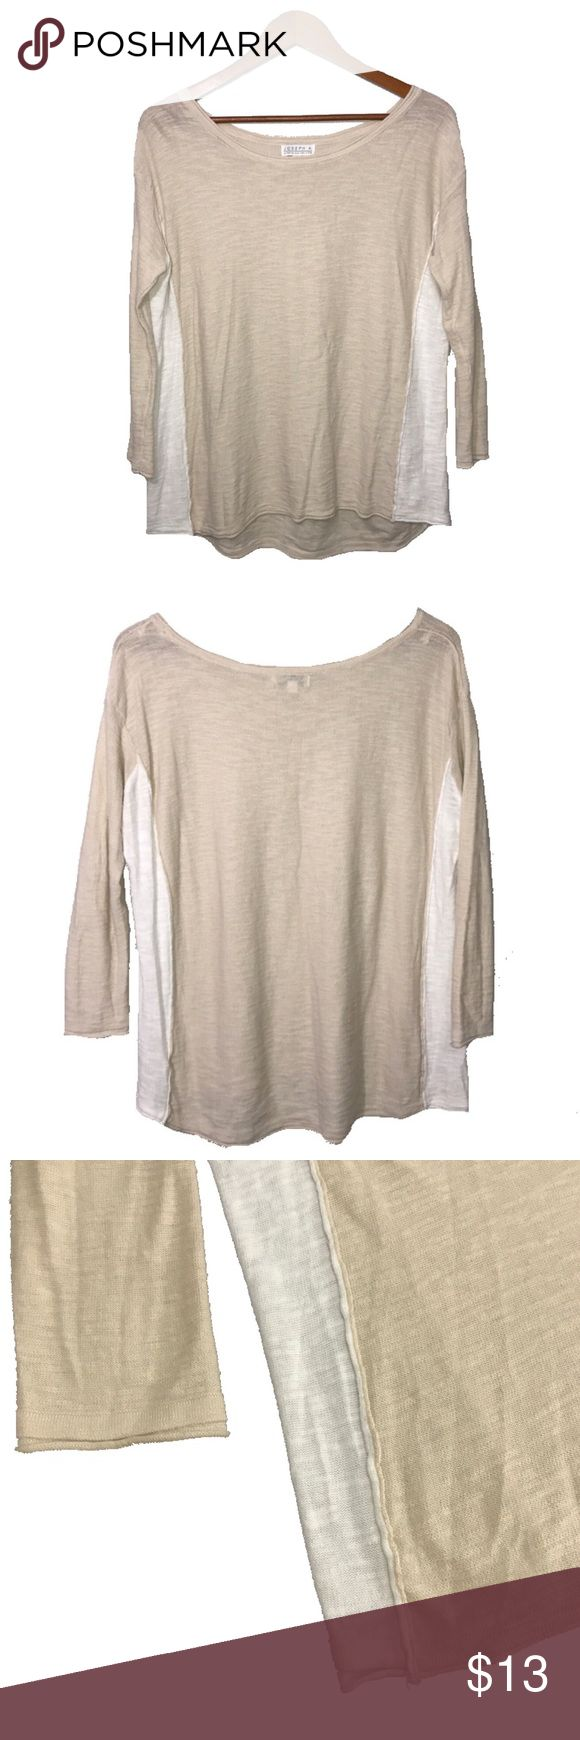 Tan/Beige & White Thin Knit Sweater This Tan/Beige & White Thin Knit Sweater by Joseph A. will become one of your go-to pieces. The all over delicate, beige fabric is completed with white stripes down the sides. The wide, rounded neckline can be worn off or on the shoulder. The slouchy, oversized fit makes sets this top apart from others in your closet. Very soft - 56% cotton, 44% rayon. This is a size SM but could easily fit a size M. Excellent condition. Tops